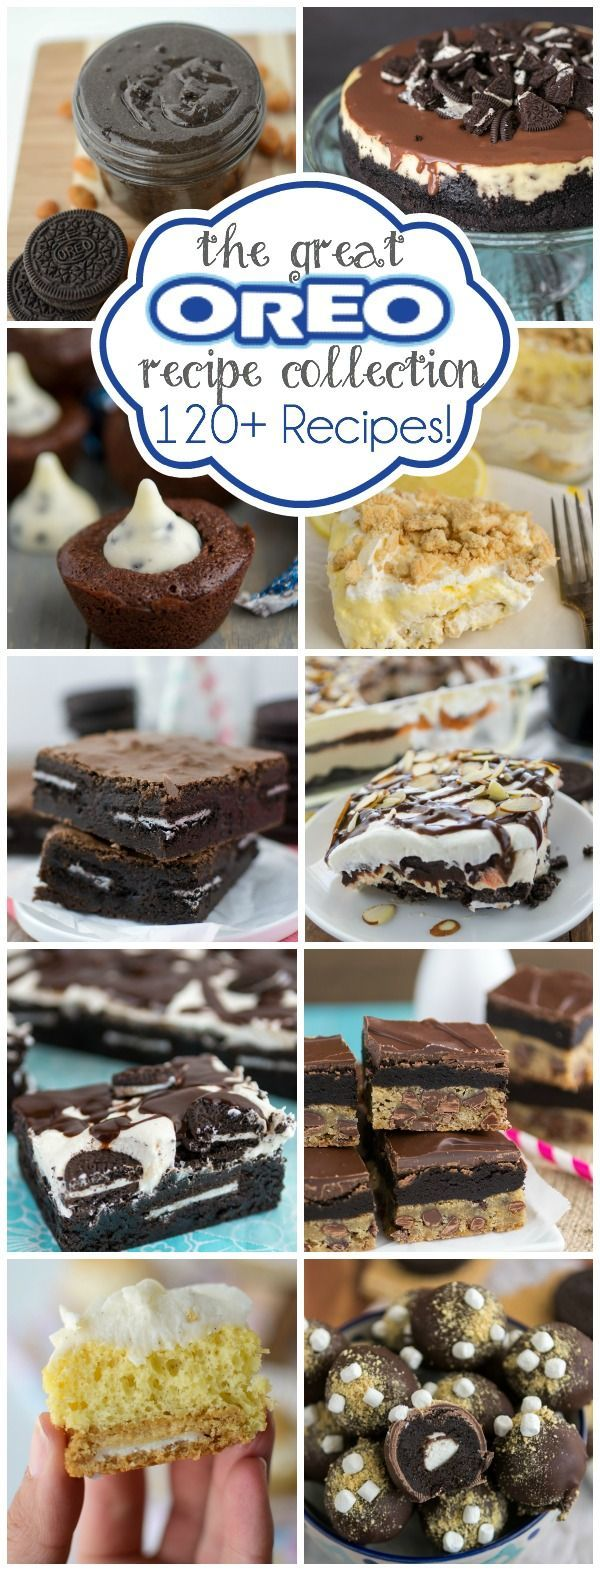 Over 120 Oreo Recipes (via Bloglovin.com )